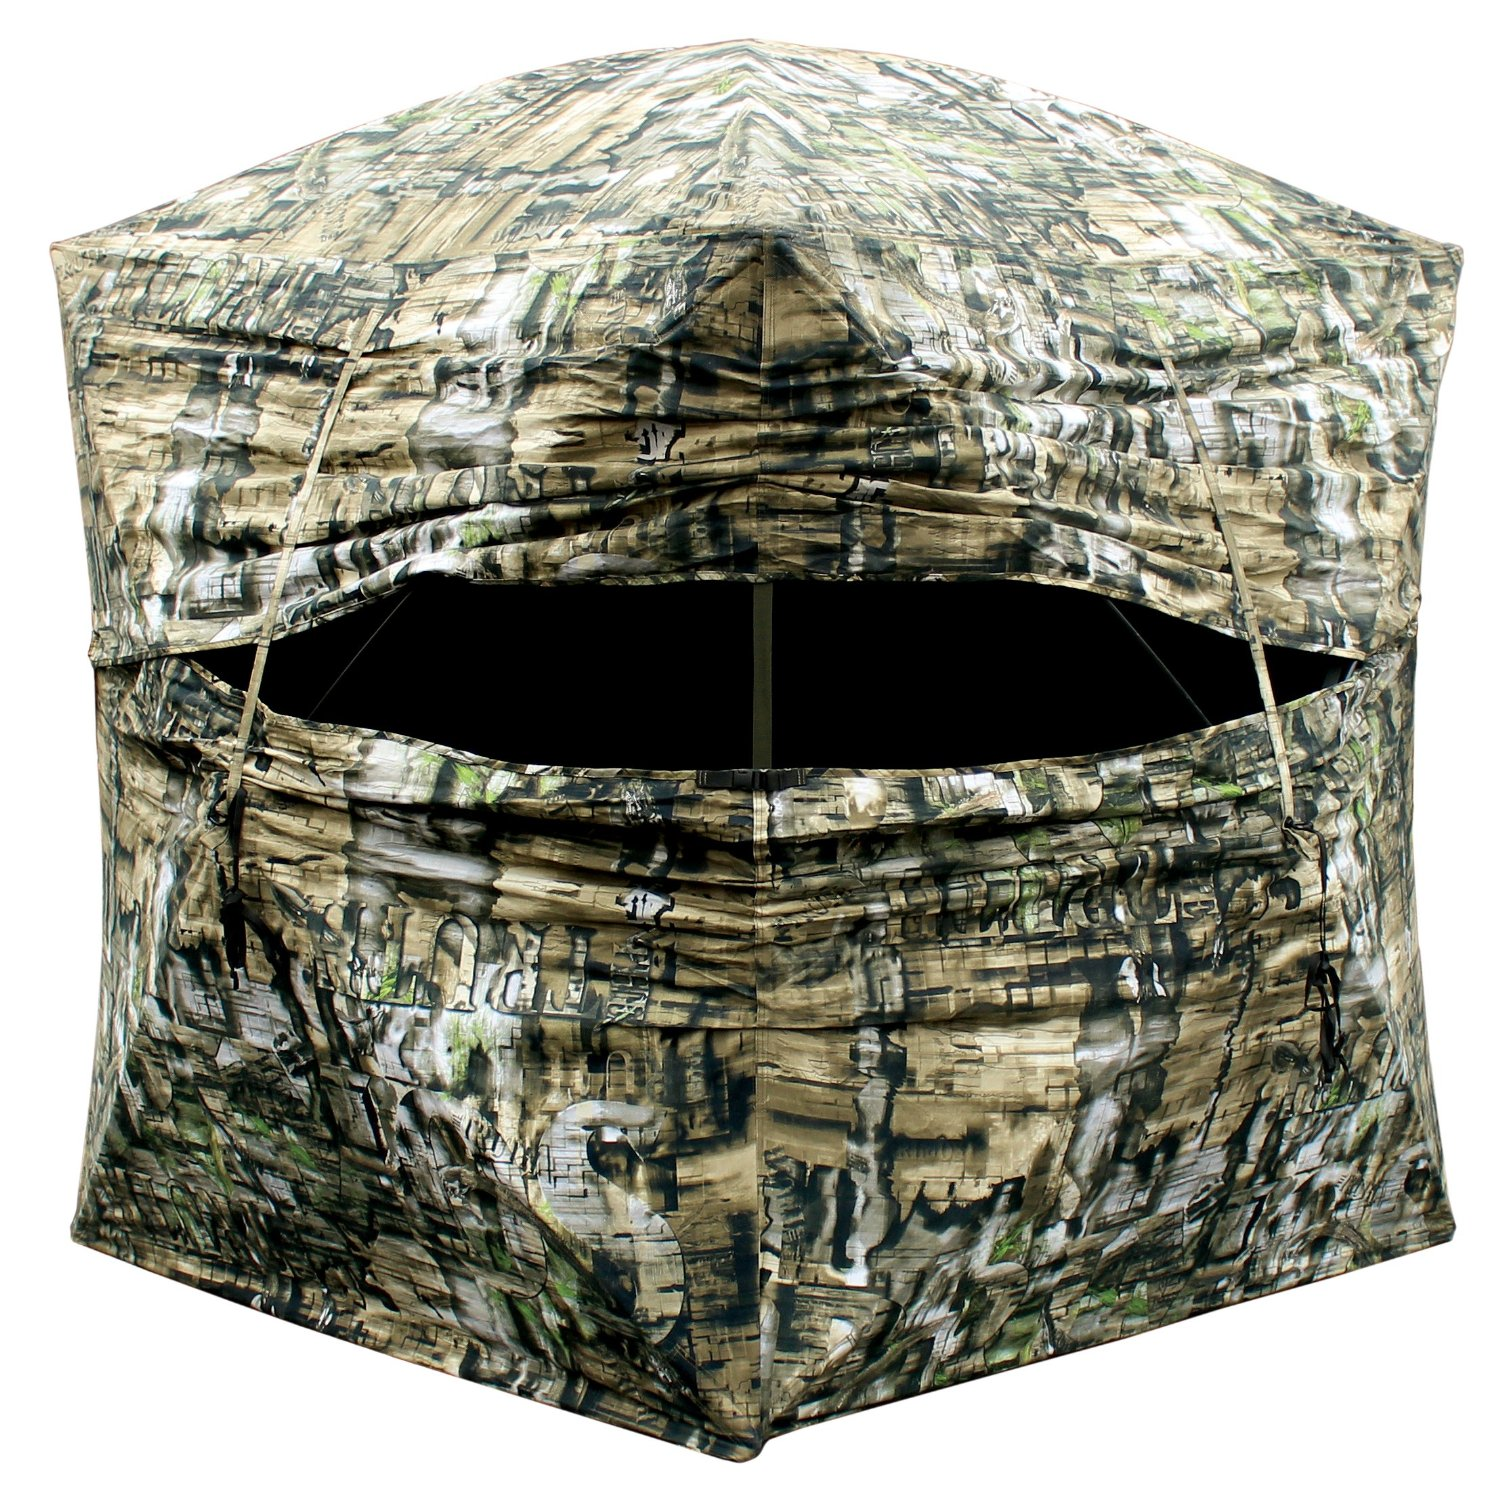 hunting win focuses their and homemade bow the attention calms six a down decoy deer away effective ground blinds from strategies myhomedesign blind